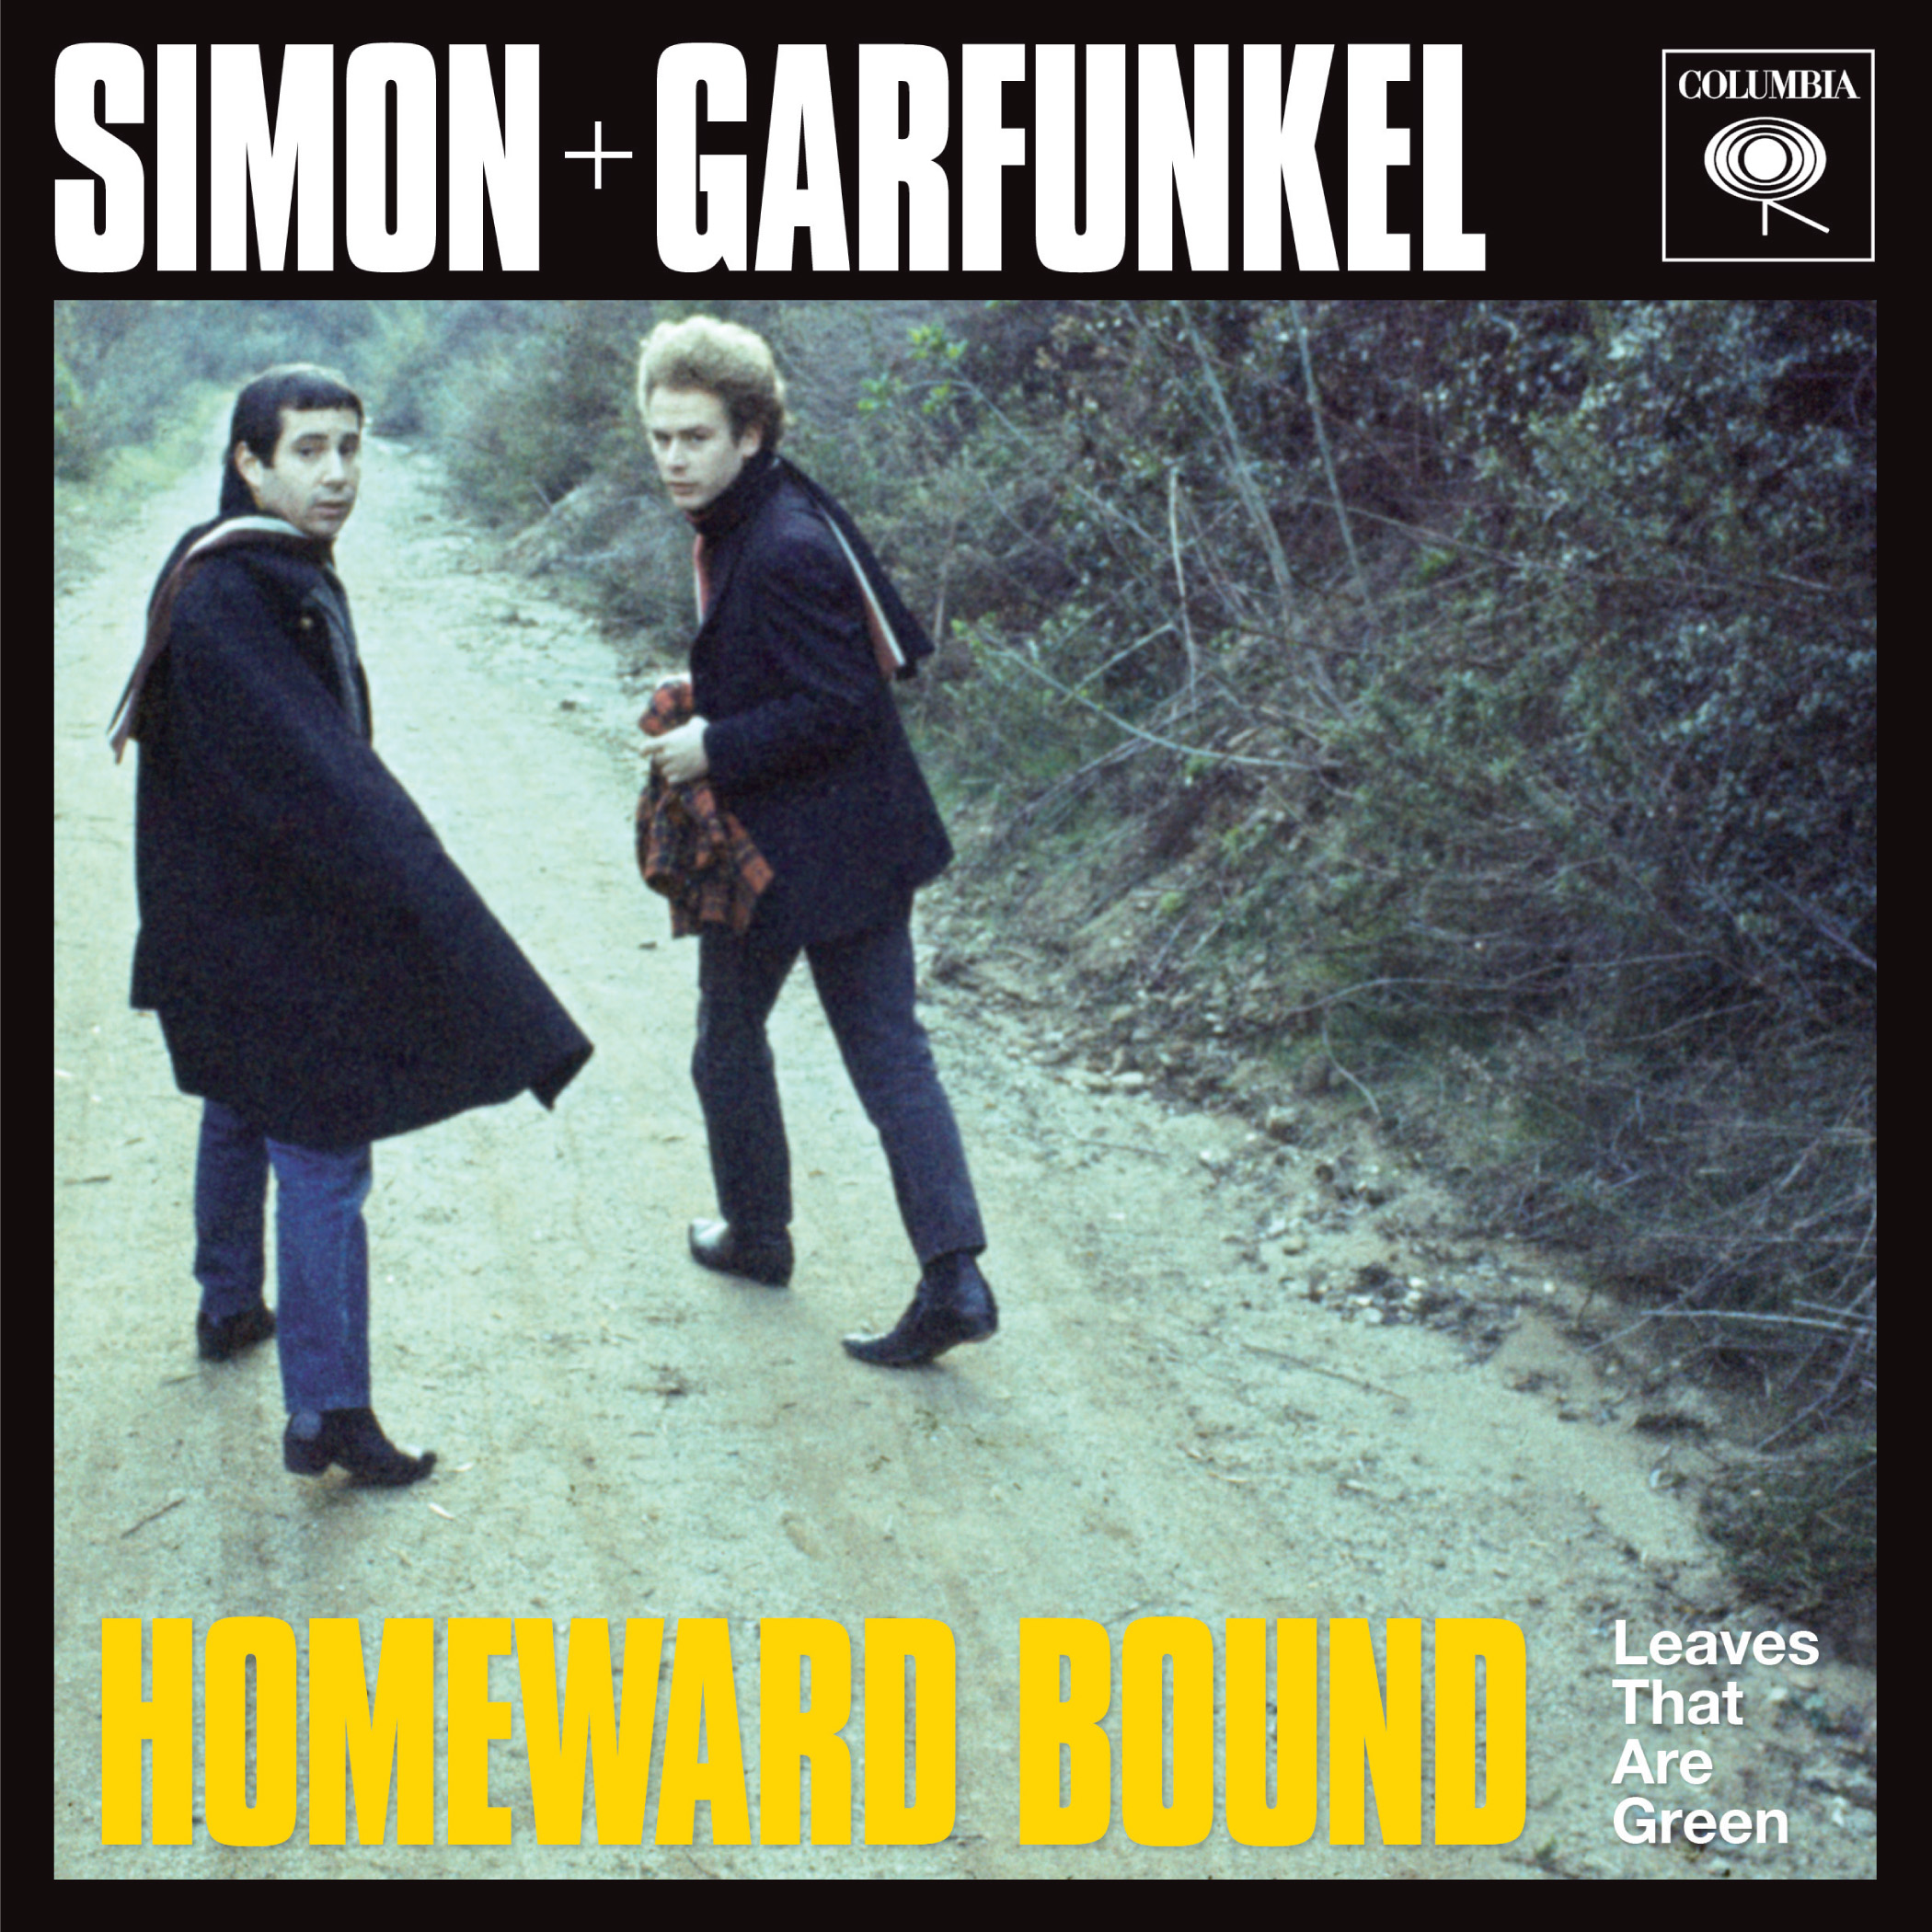 Simon & Garfunkel - Homeward Bound/Leaves That Are Green